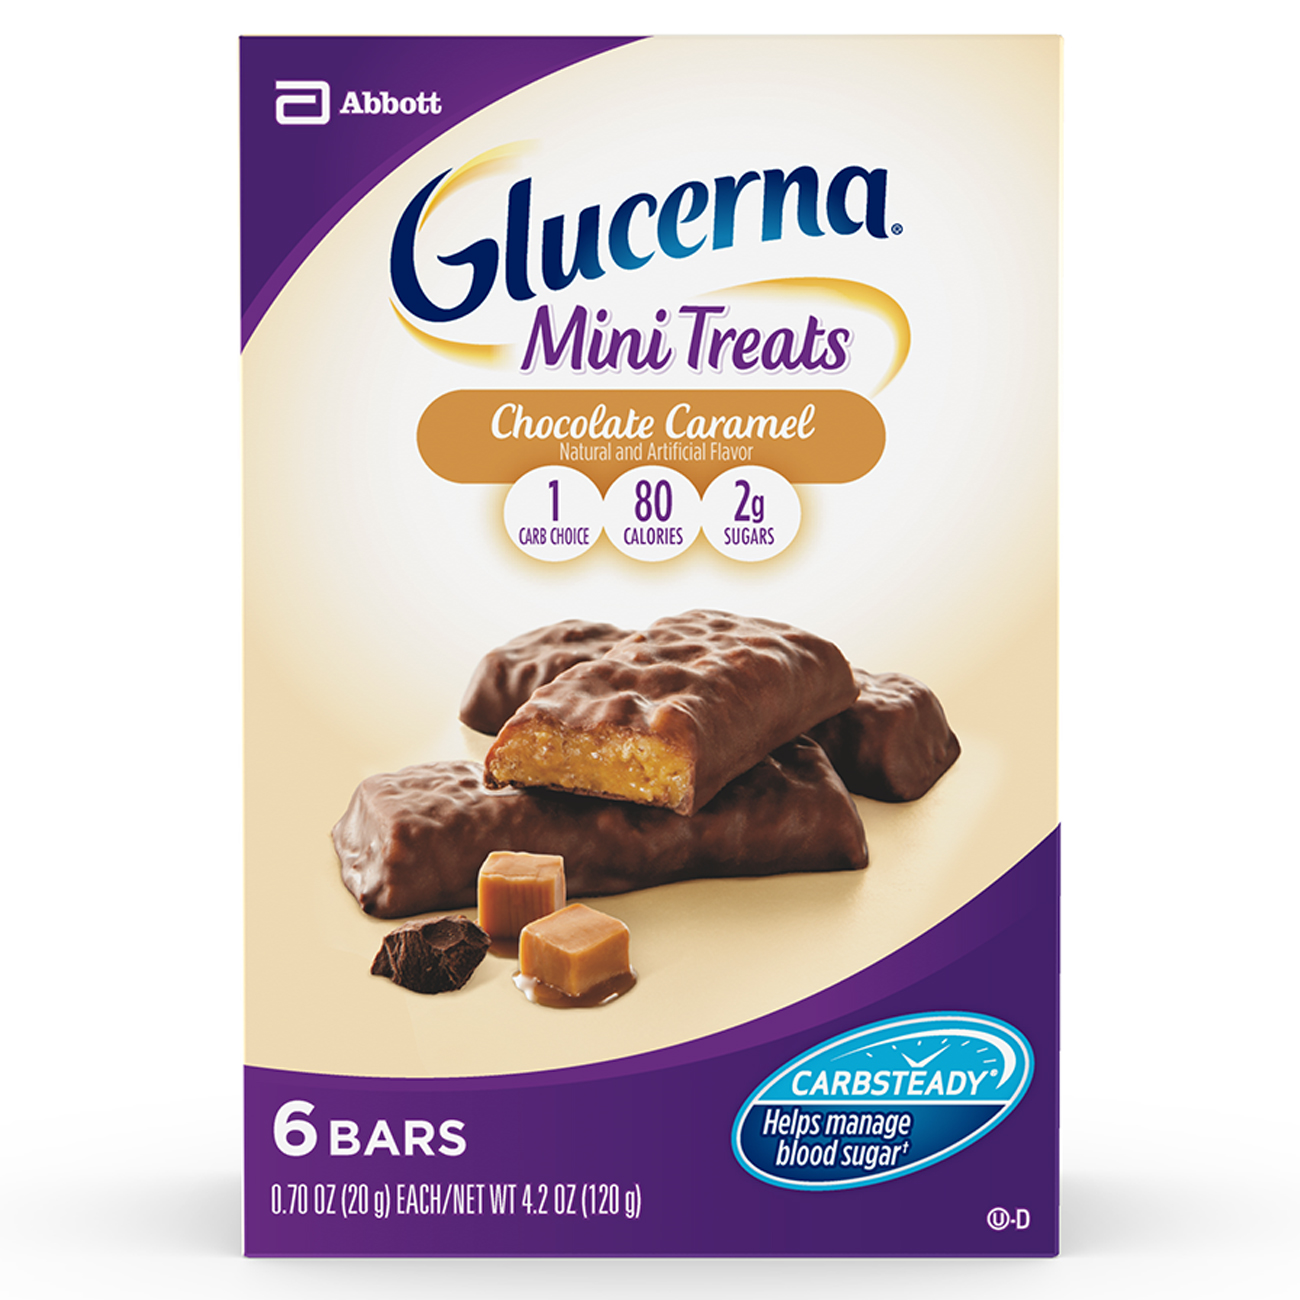 Glucerna Mini Treat Bars, To Help Manage Blood Sugar, Chocolate Caramel, 0.70 oz, 6 Count